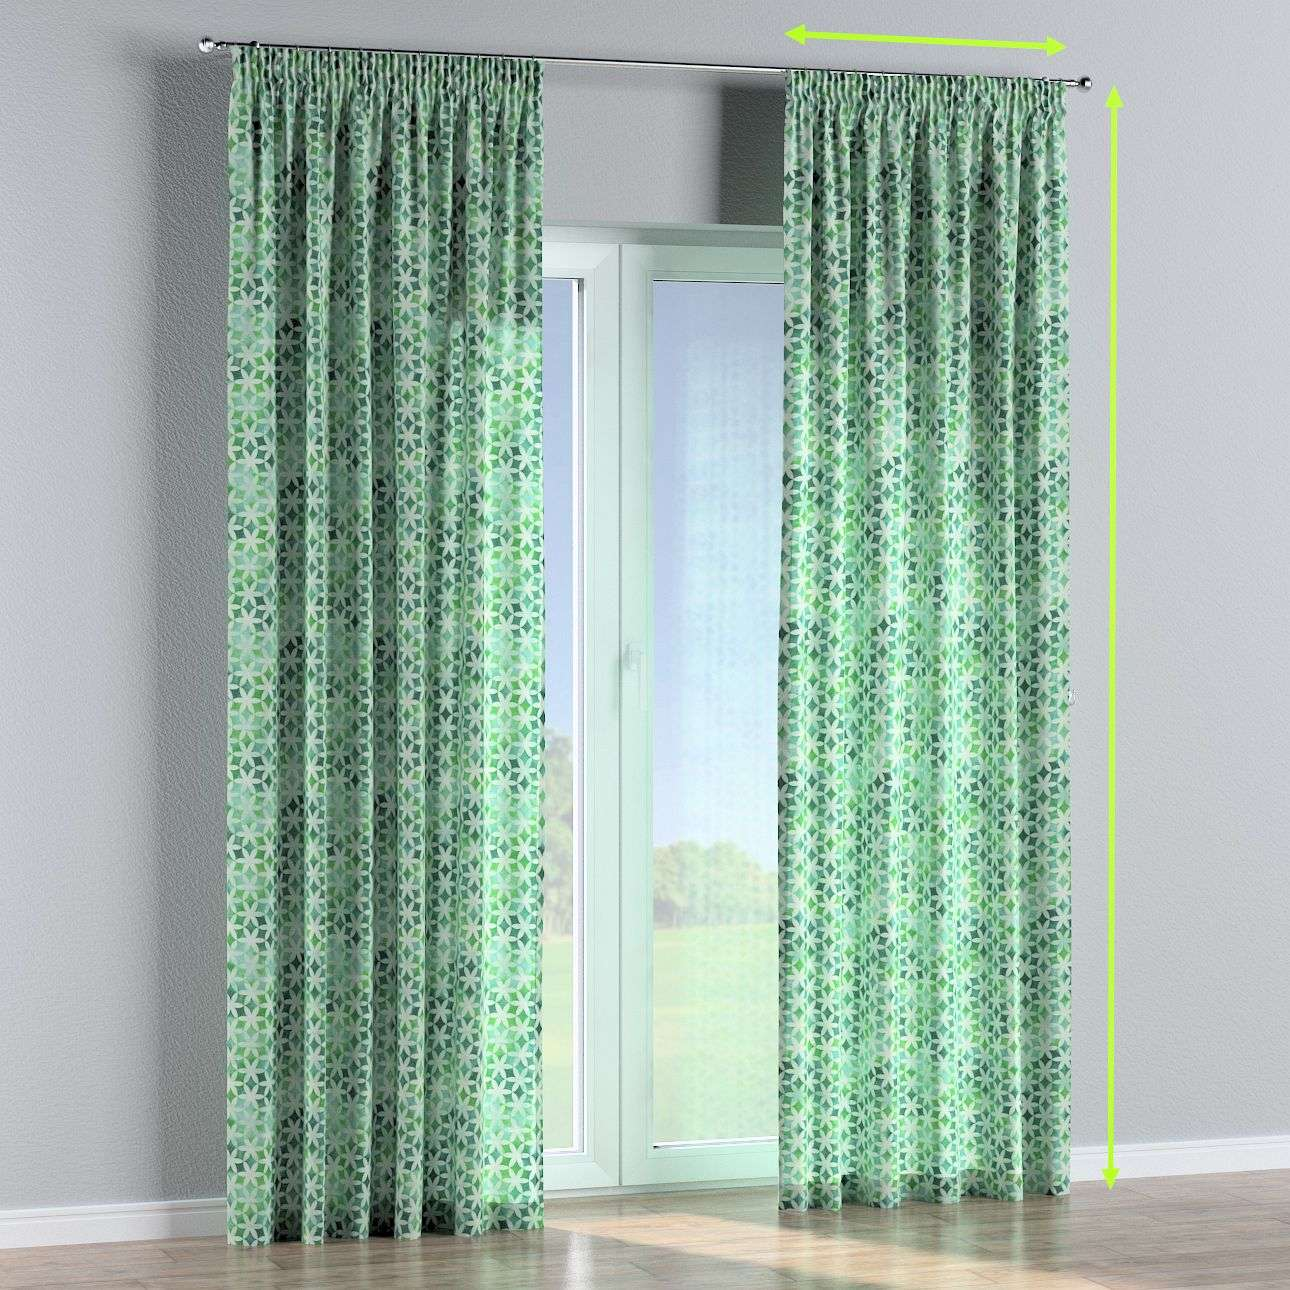 Pencil pleat curtain in collection Tropical Island, fabric: 141-65